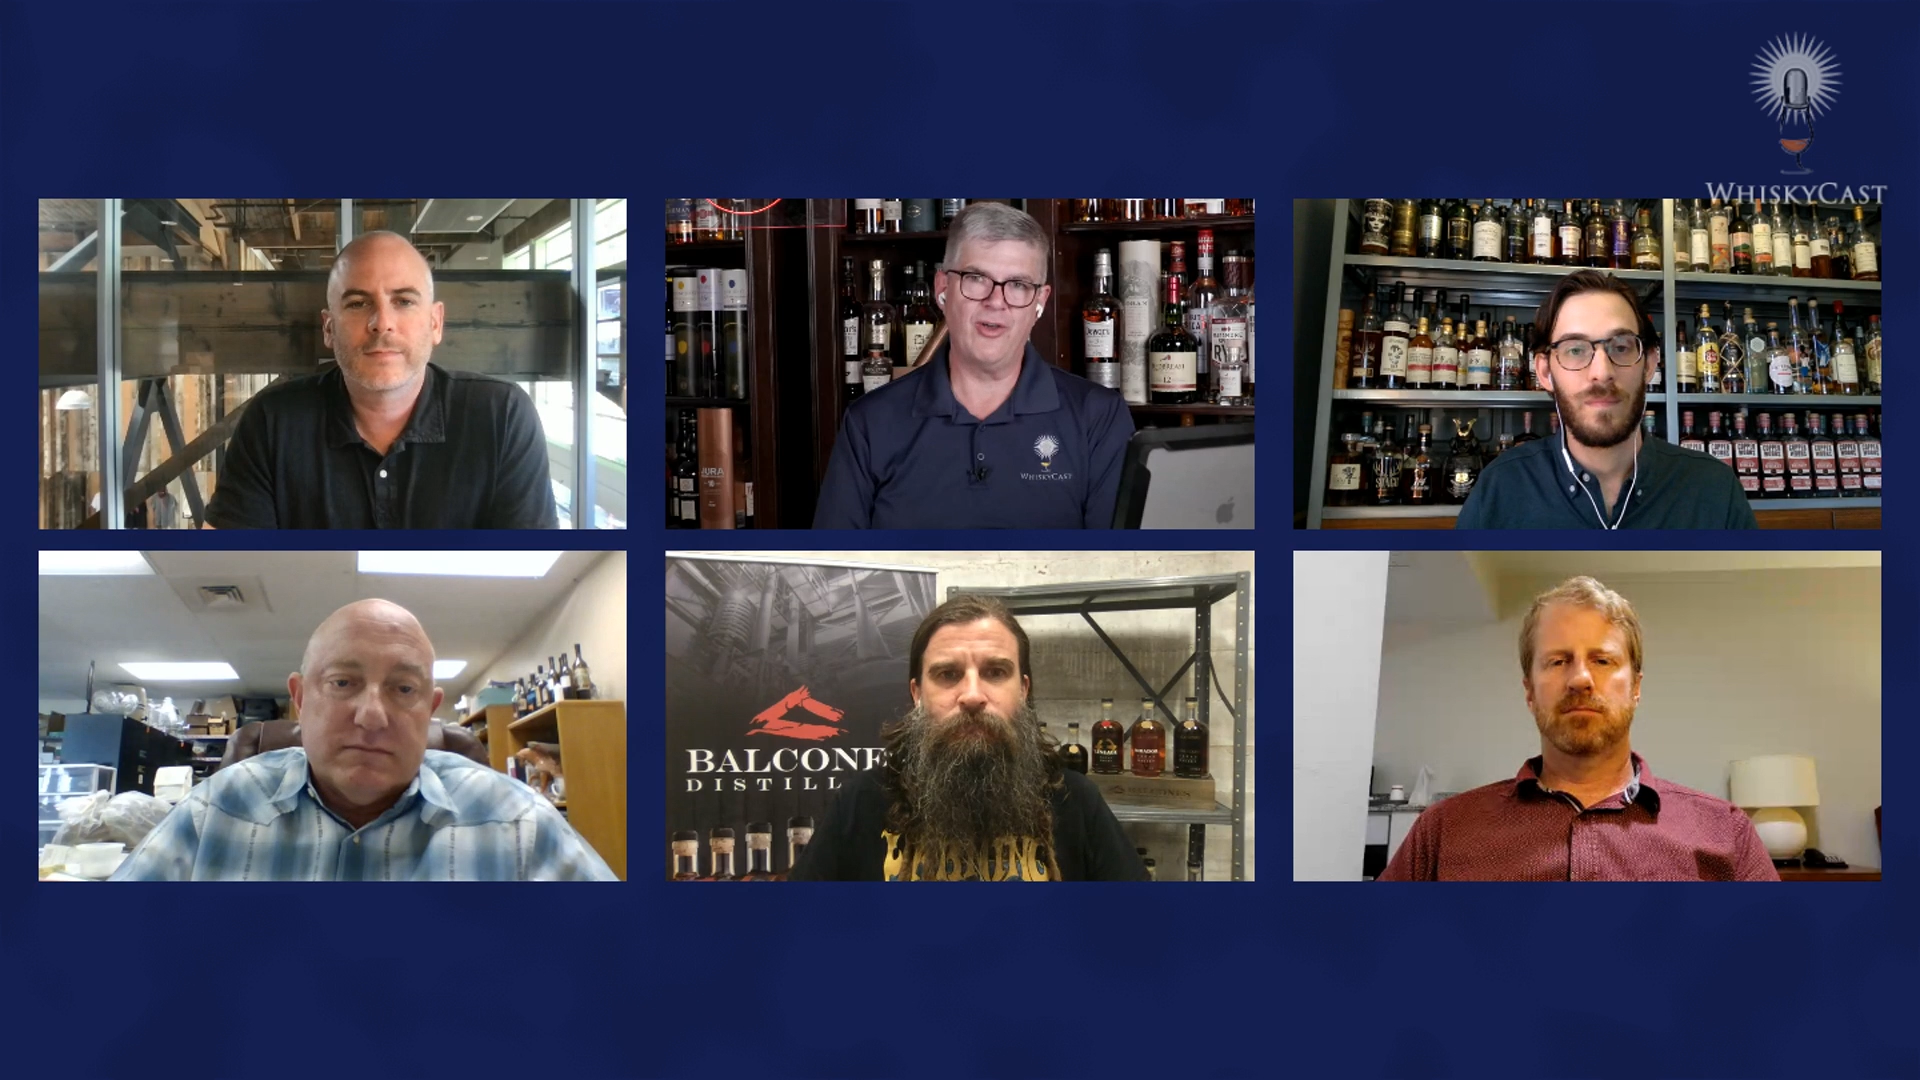 American Single Malt Whiskey Commission members Steve Hawley of Westland, Jeff Kanof of Copperworks, Stephen Gould of Golden Moon Distillery, Jared Himstedt of Balcones, and Ty Phelps of Andalusia Distillery joined us on the latest #HappyHourLive webcast Friday night.